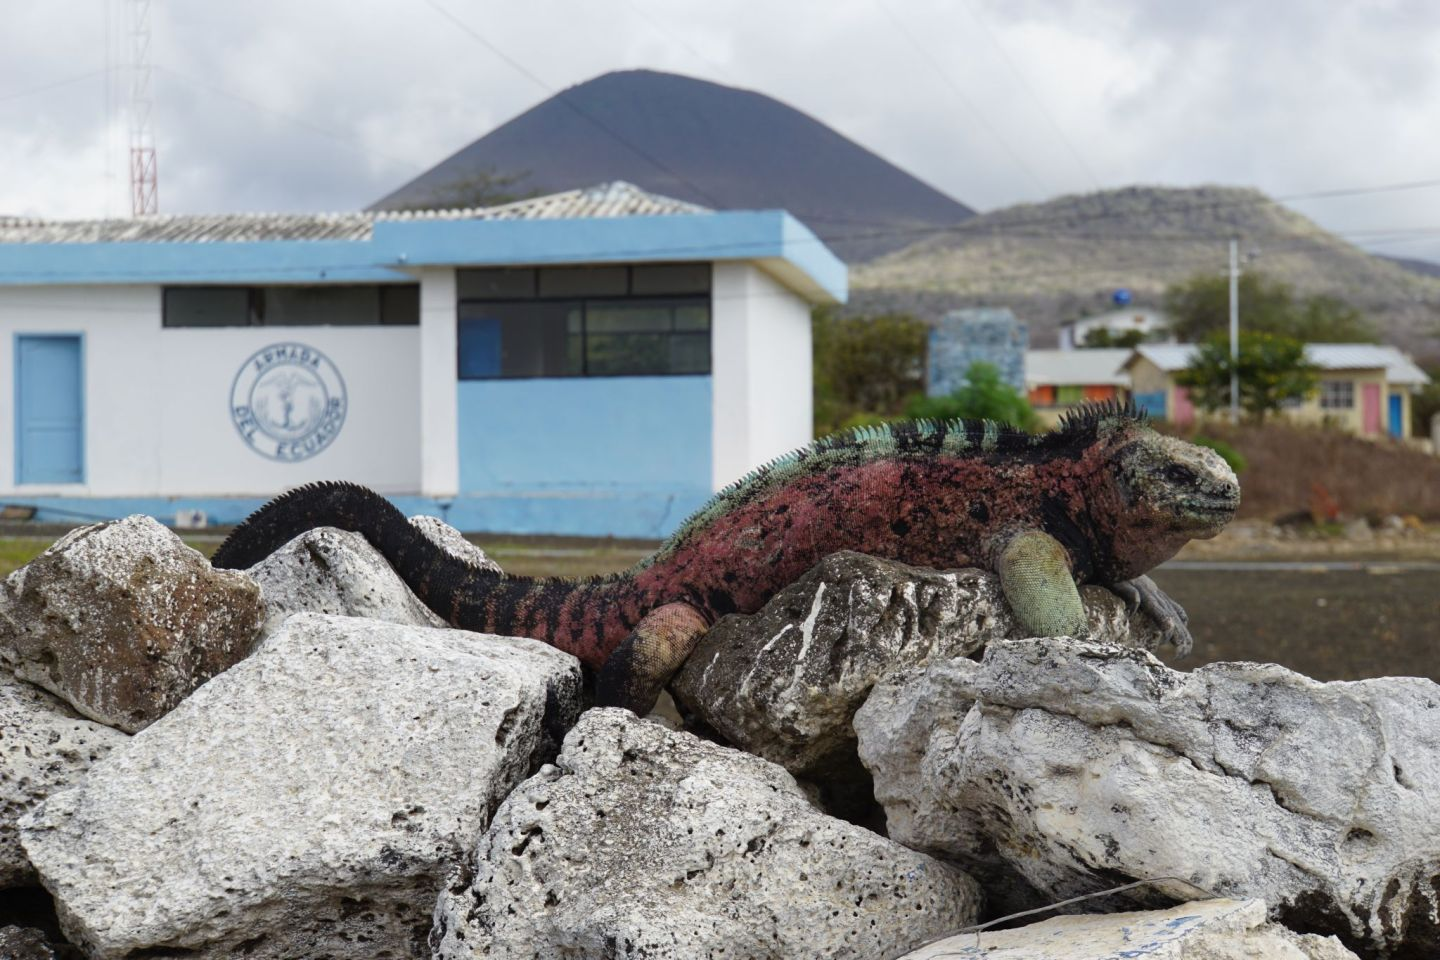 A Marine Iguana on Isla Floreana on the Galápagos islands.